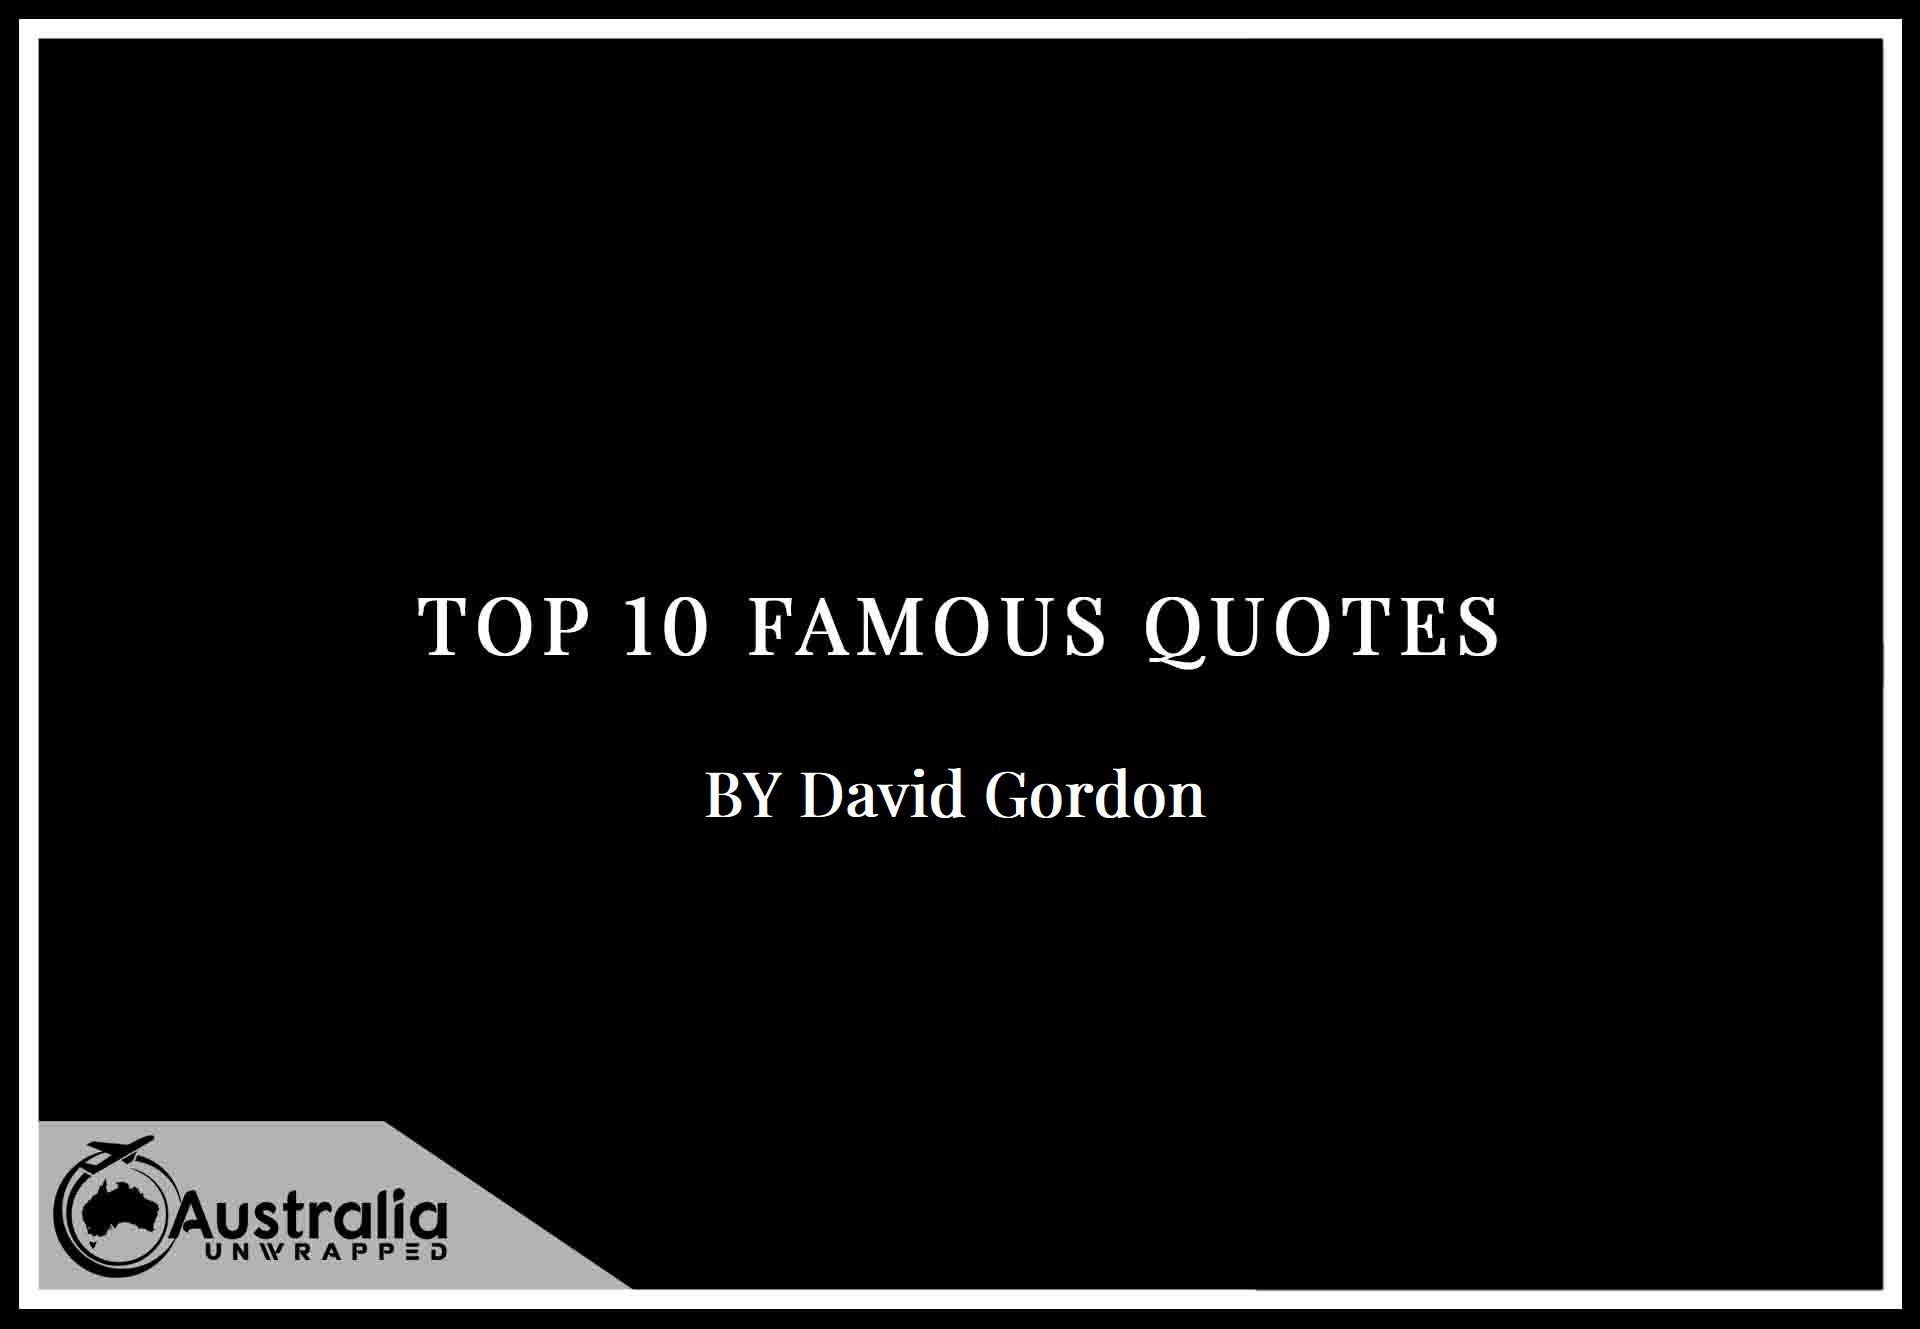 Top 10 Famous Quotes by Author David Gordon